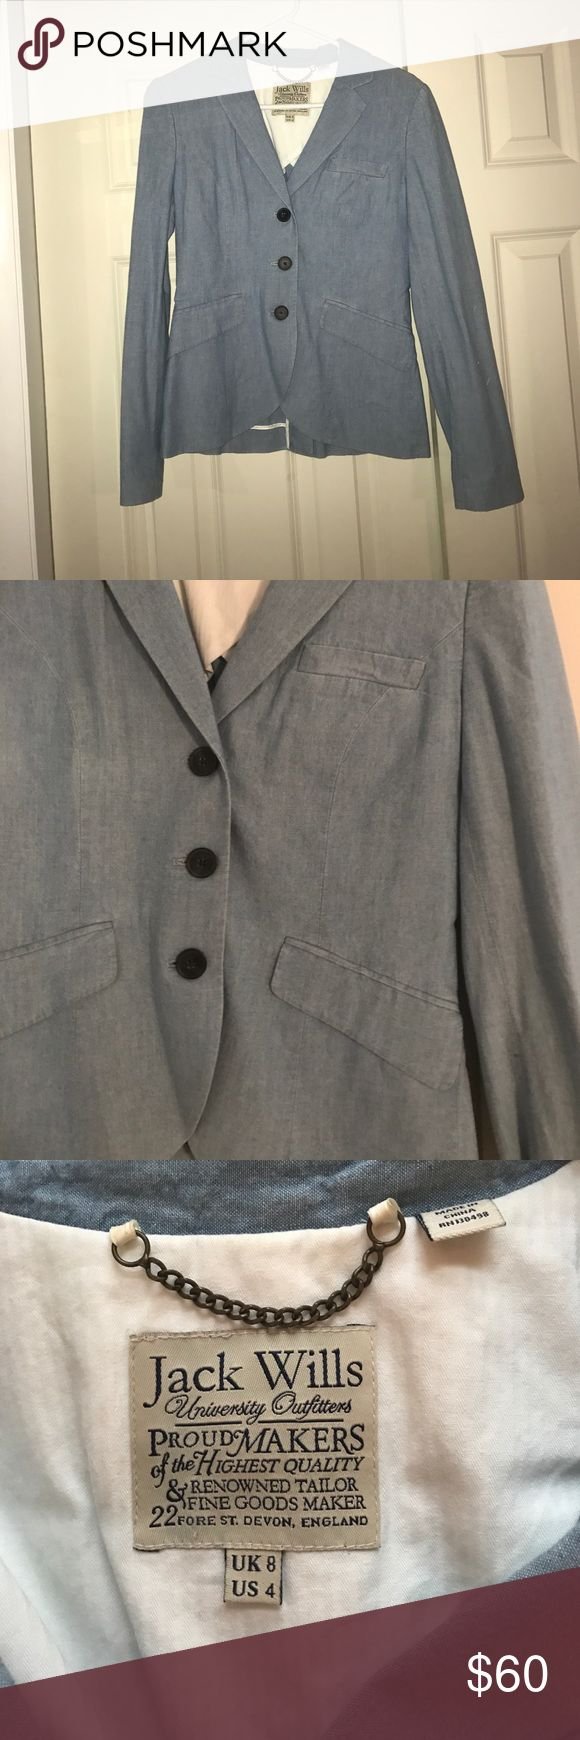 NWOT Jack Wills Chambray Blazer NWOT Jack Wills chambray blazer. Never worn and great condition with no stains or tears. Three button front and jacket has tampered front and back. Light weight jacket perfect for spring/summer. Jacket is also lightly lined. Size US 4 Jack Wills Jackets & Coats Blazers